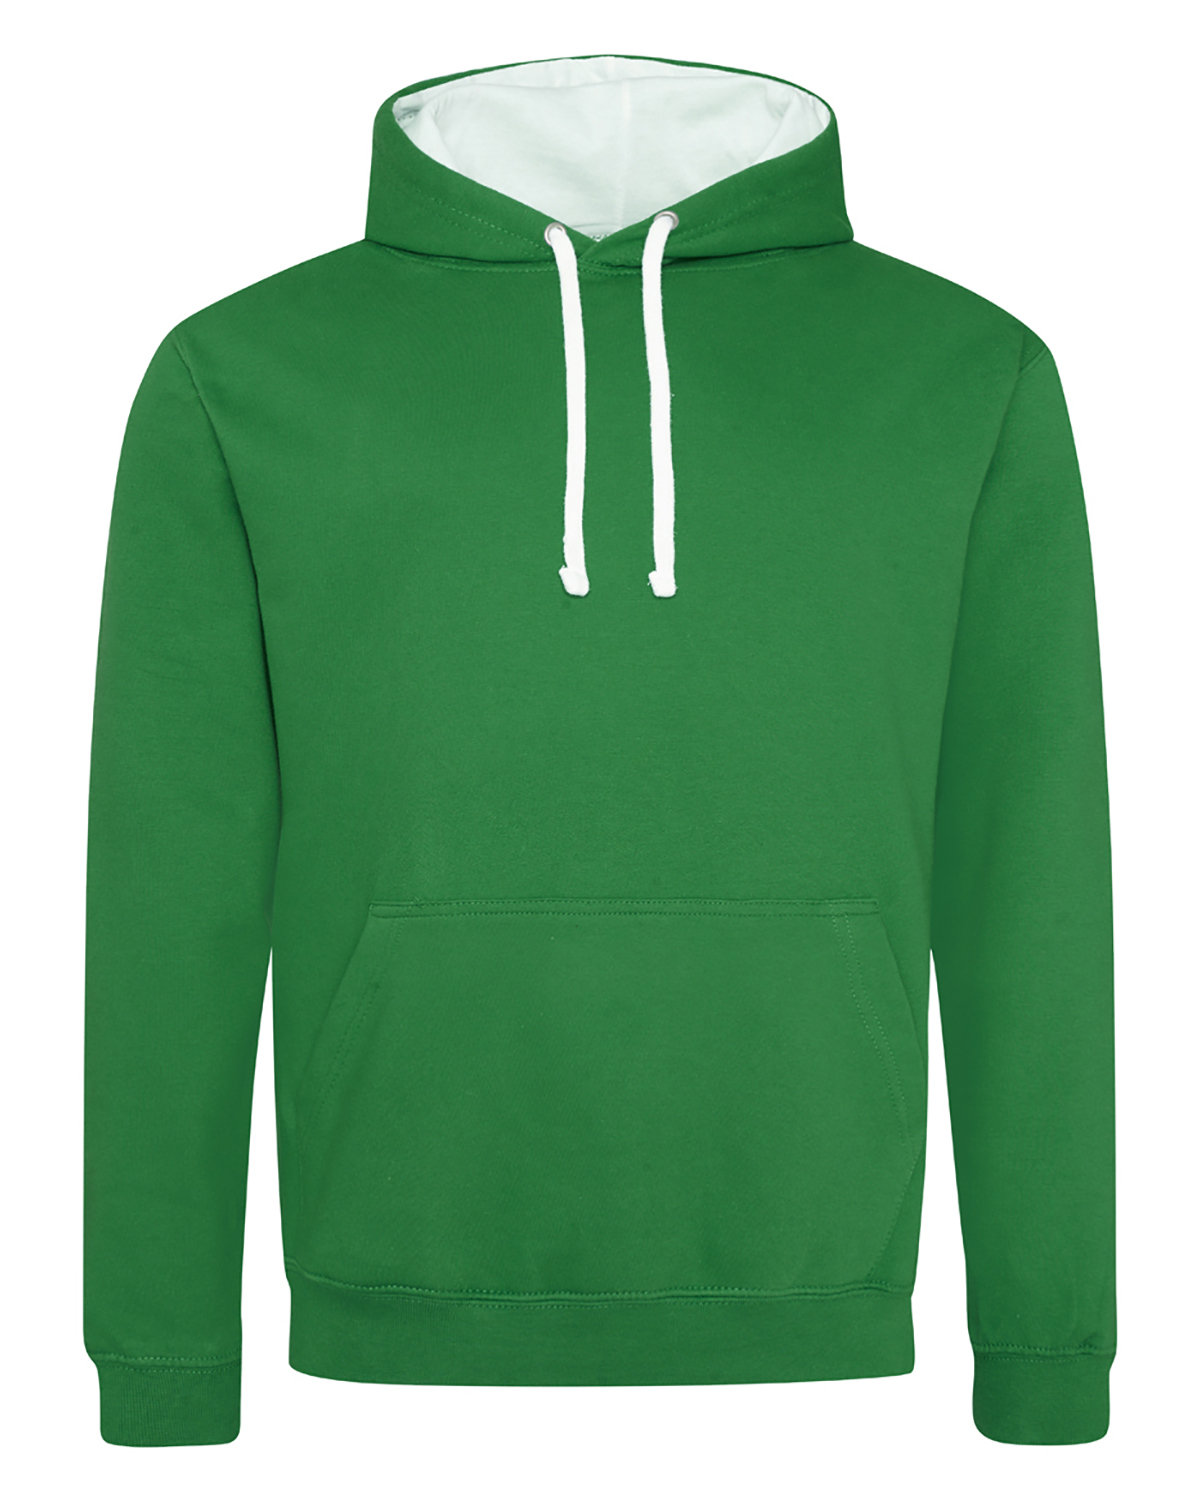 Just Hoods By AWDis Adult 80/20 Midweight Varsity Contrast Hooded Sweatshirt KLY GRN/ ARC WHT